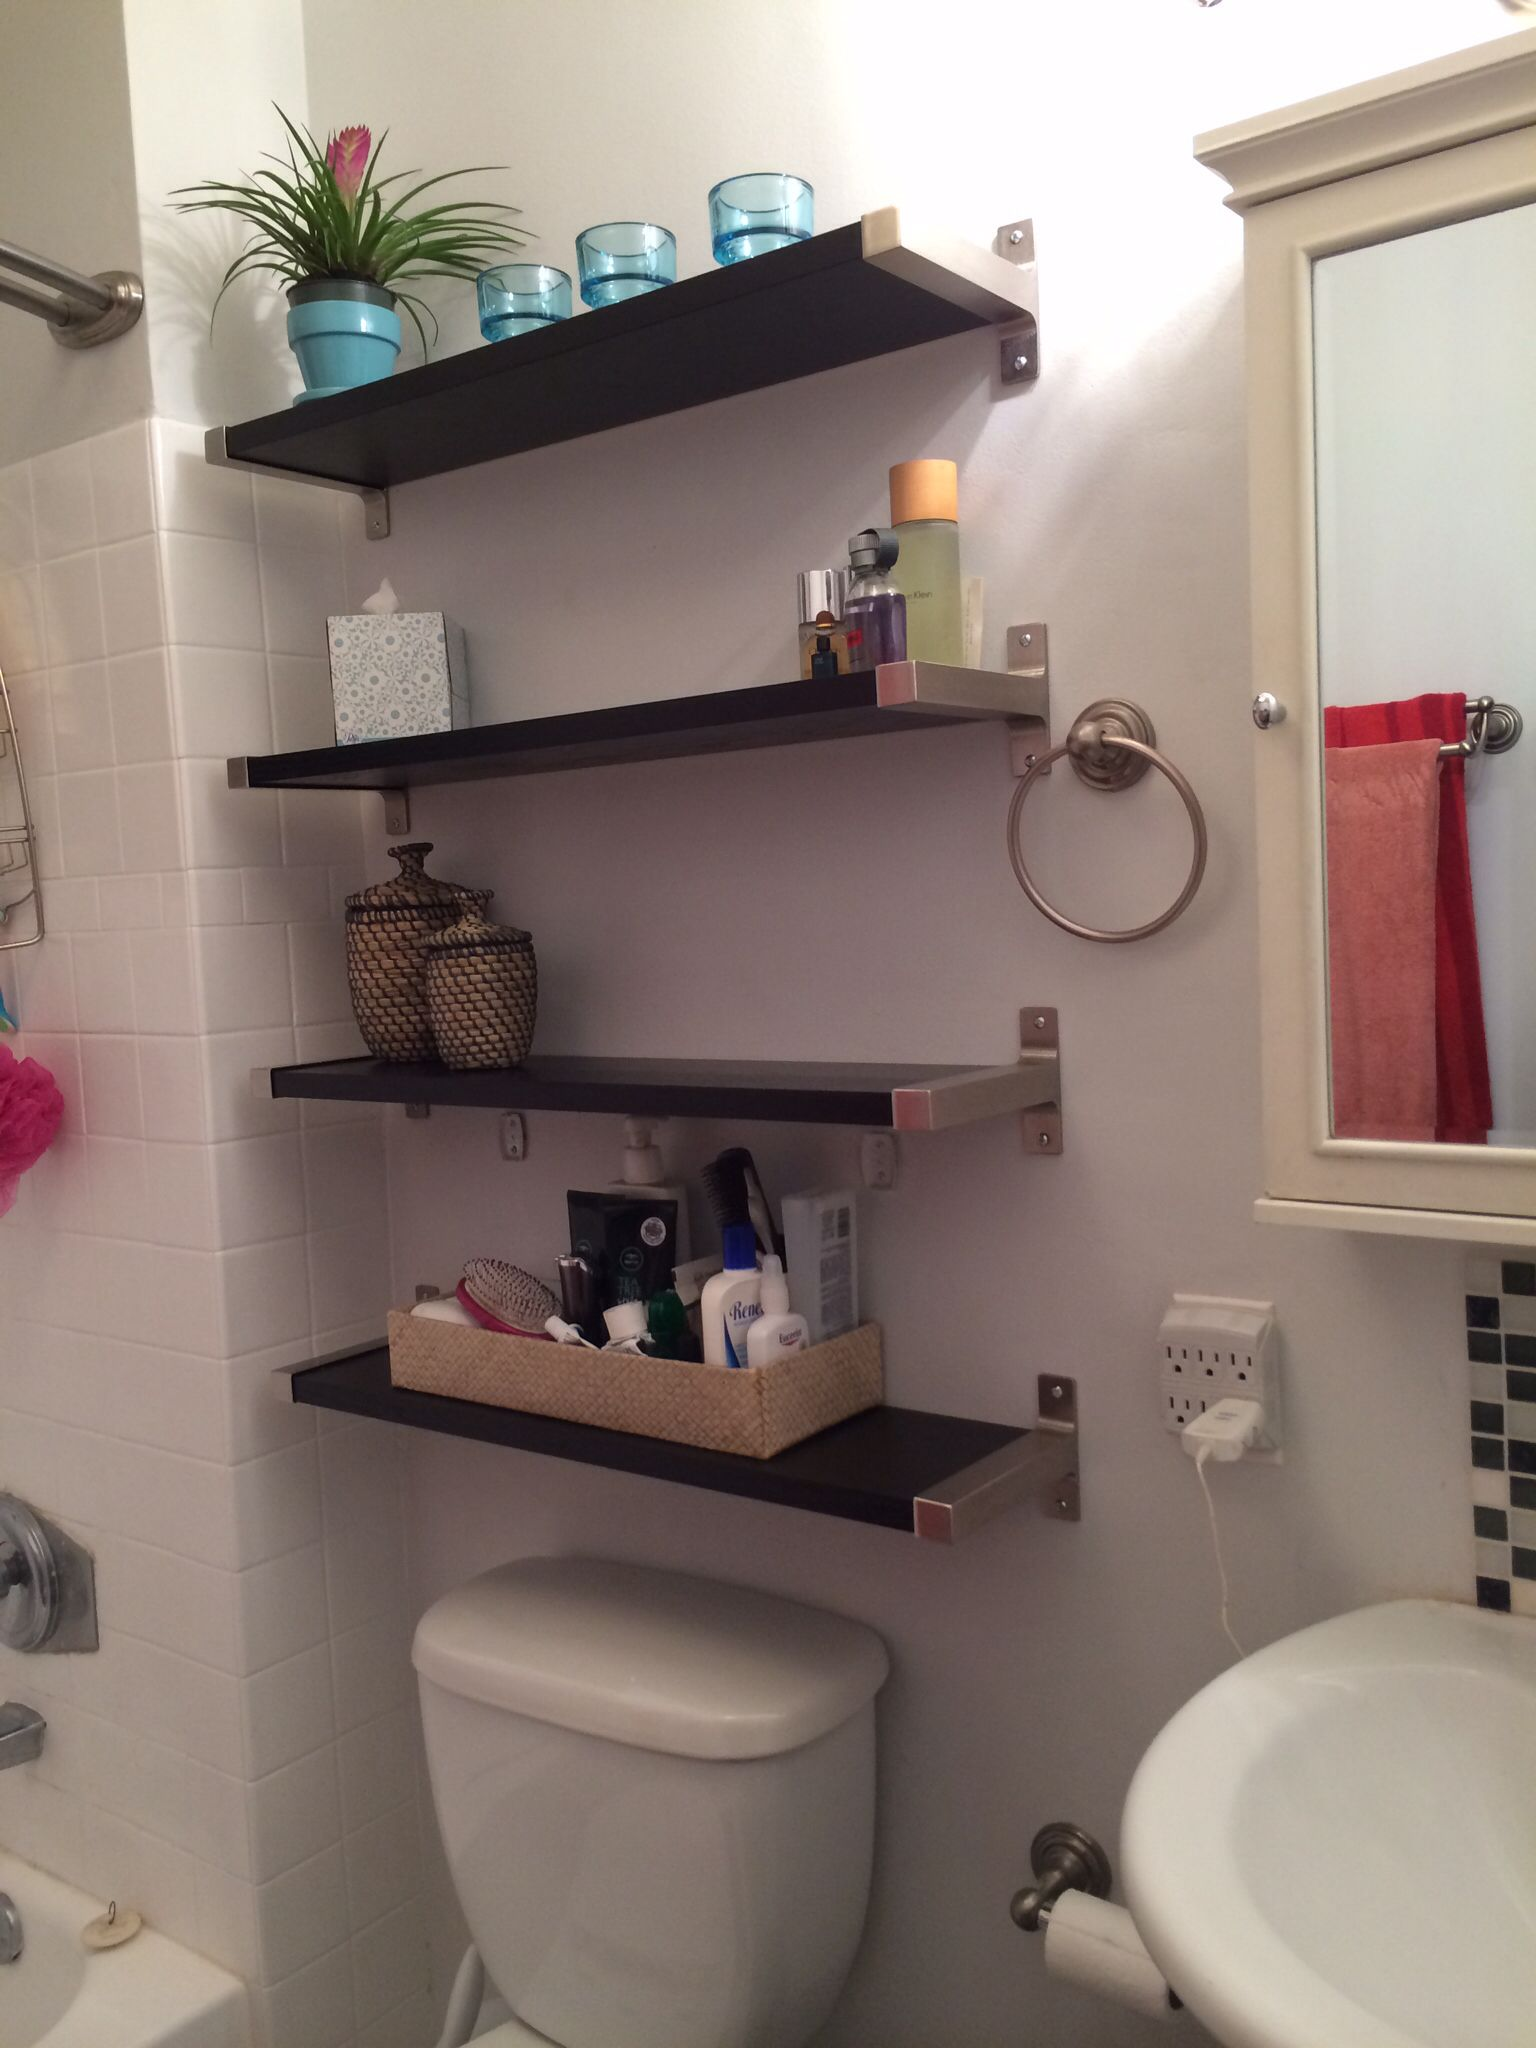 Small bathroom solutions - Ikea shelves | Bathroom | Pinterest ...